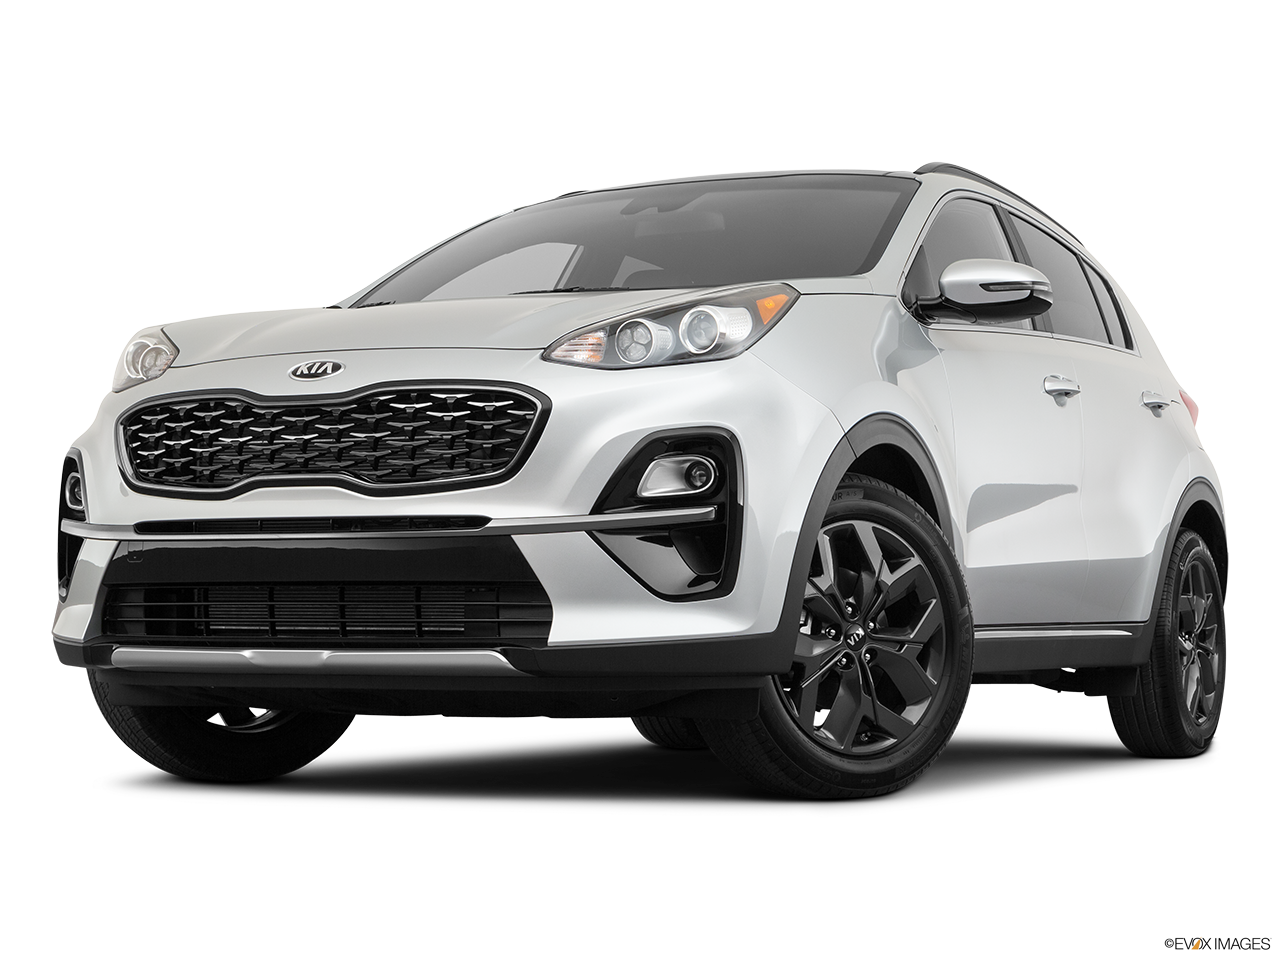 2020 Kia Sportage photo